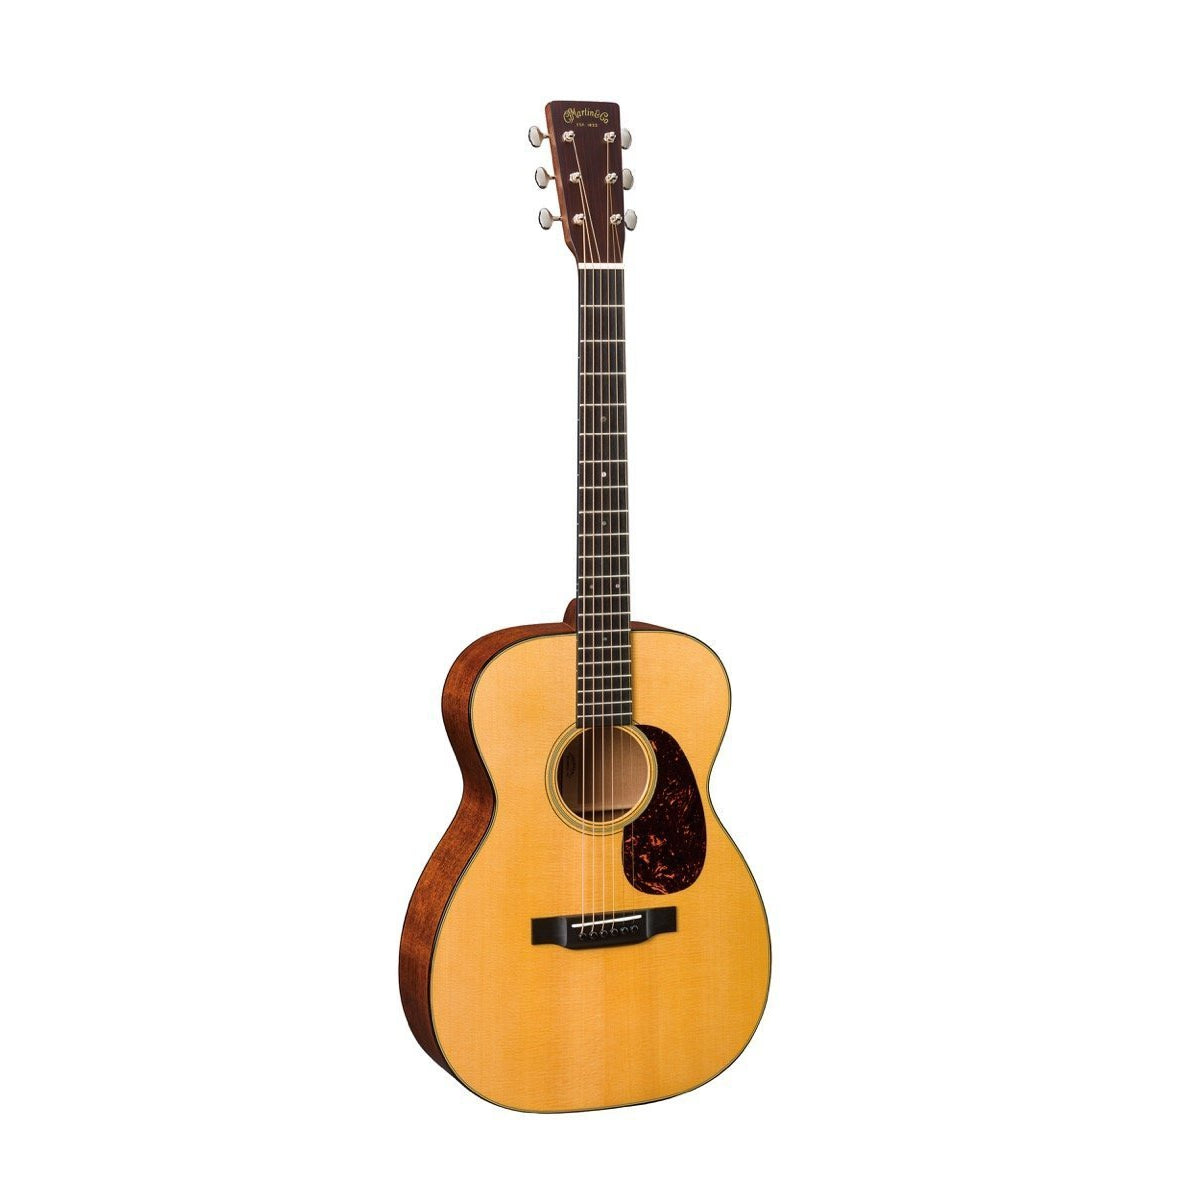 Martin 0018 Grand Concert Acoustic Guitar (with Case), Natural